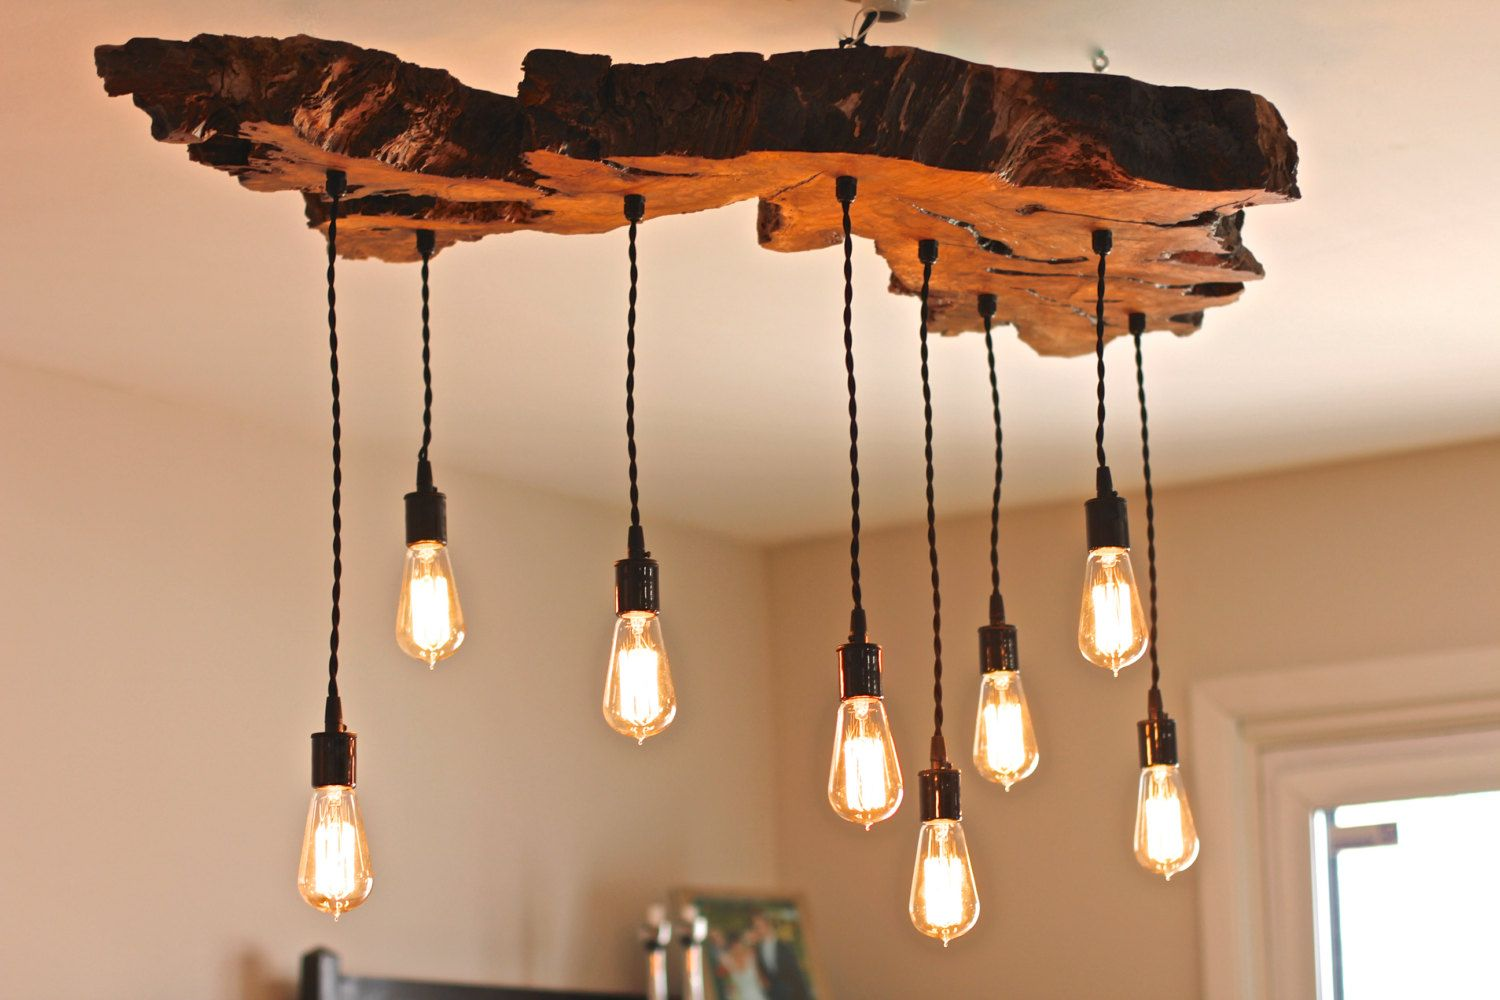 Lampe Küche Modern Olive Wood Live Edge Light Fixture Earthy Rustic